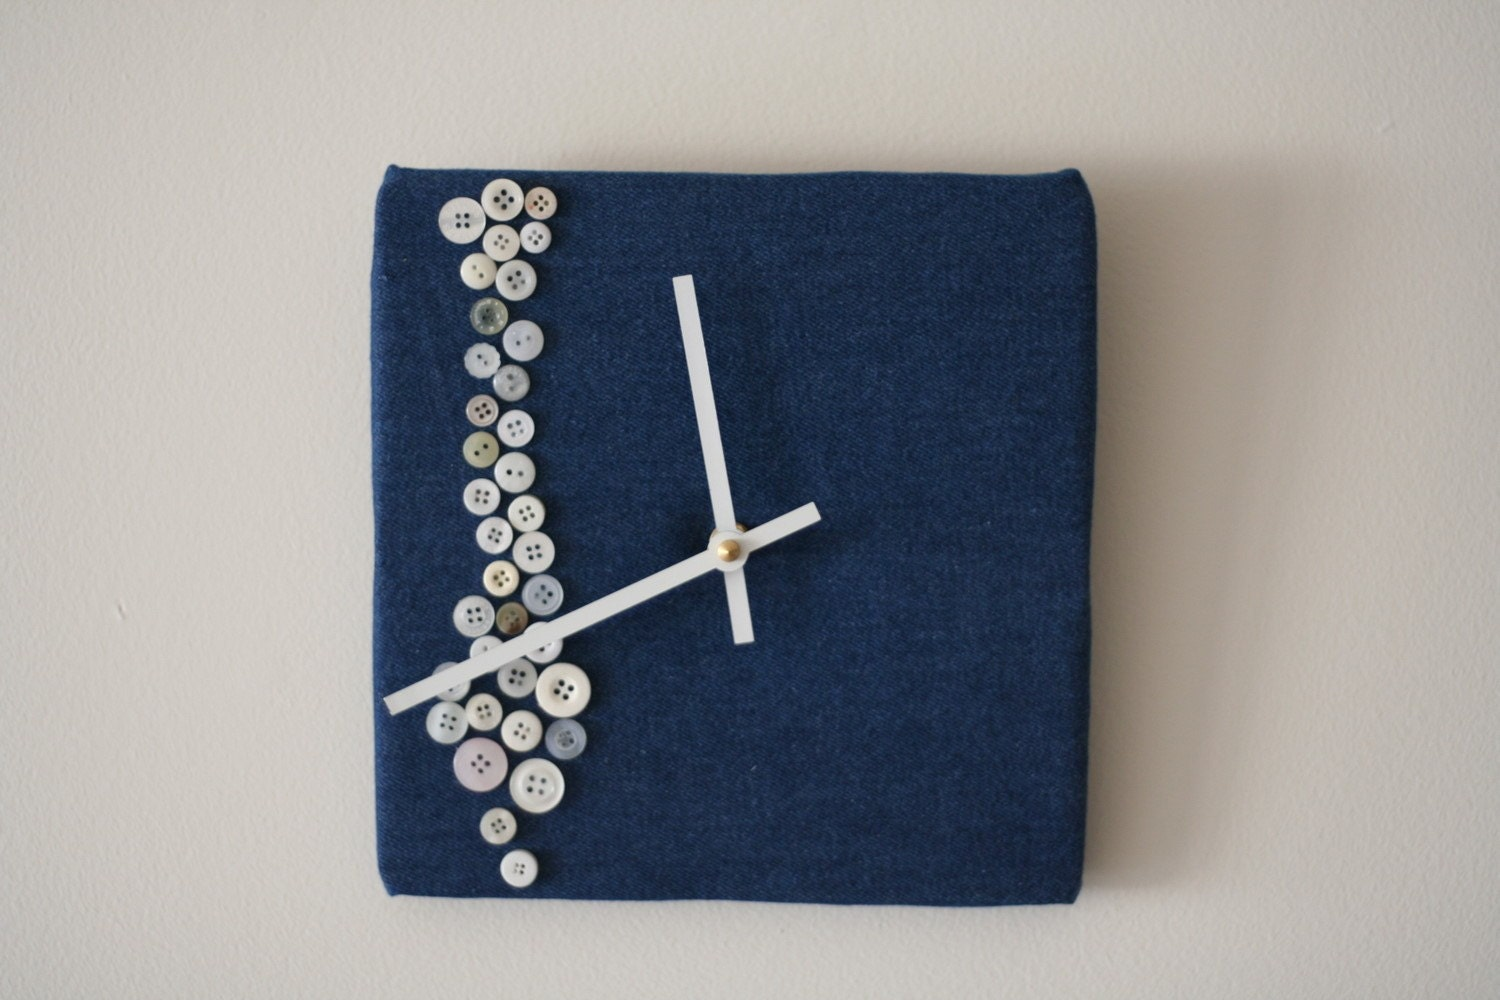 white button clock